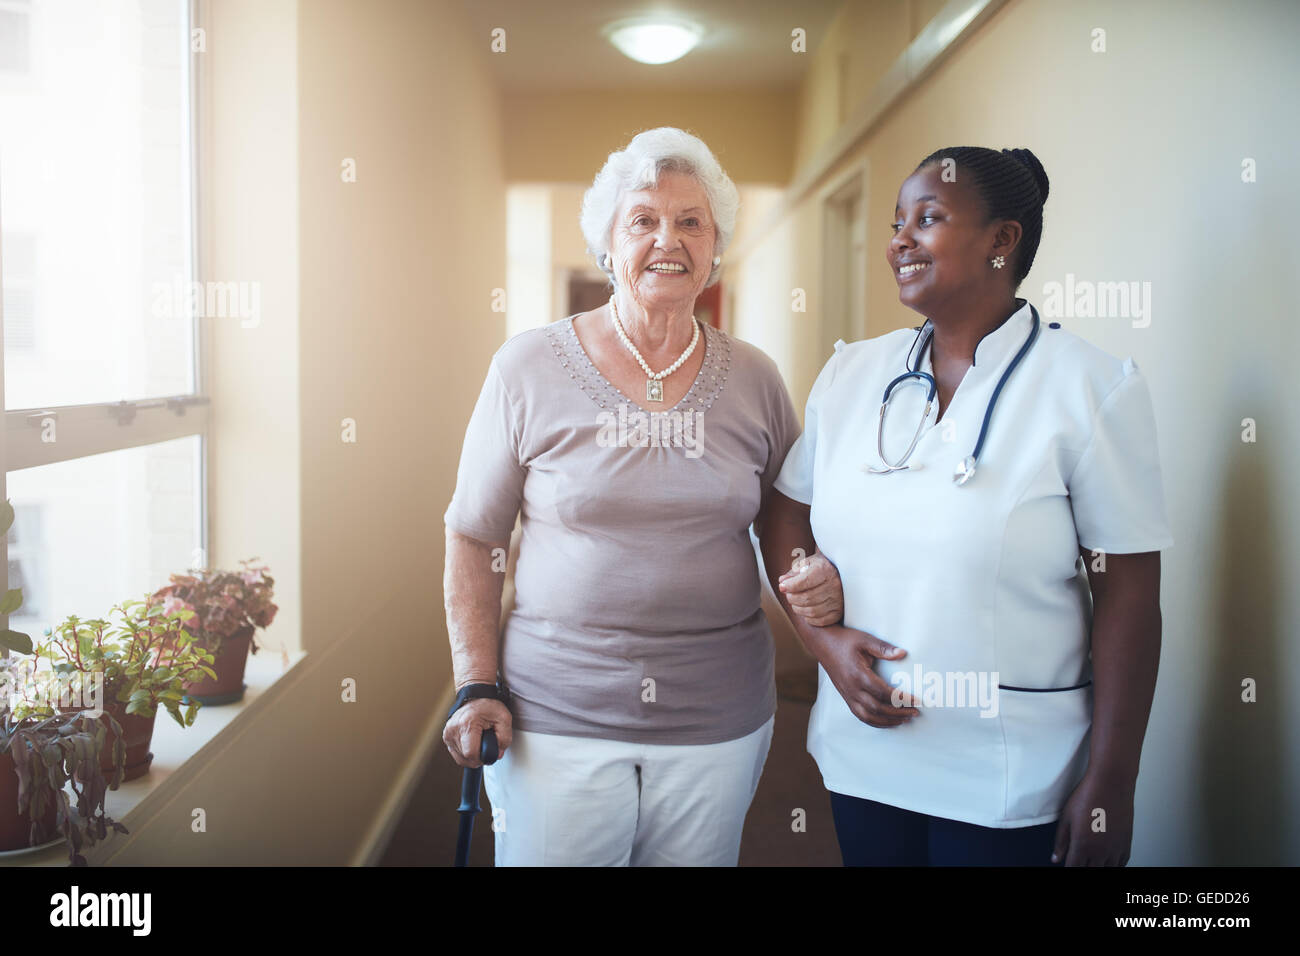 Happy healthcare worker and senior woman together at nursing home. Caring female doctor assisting a senior patient - Stock Image